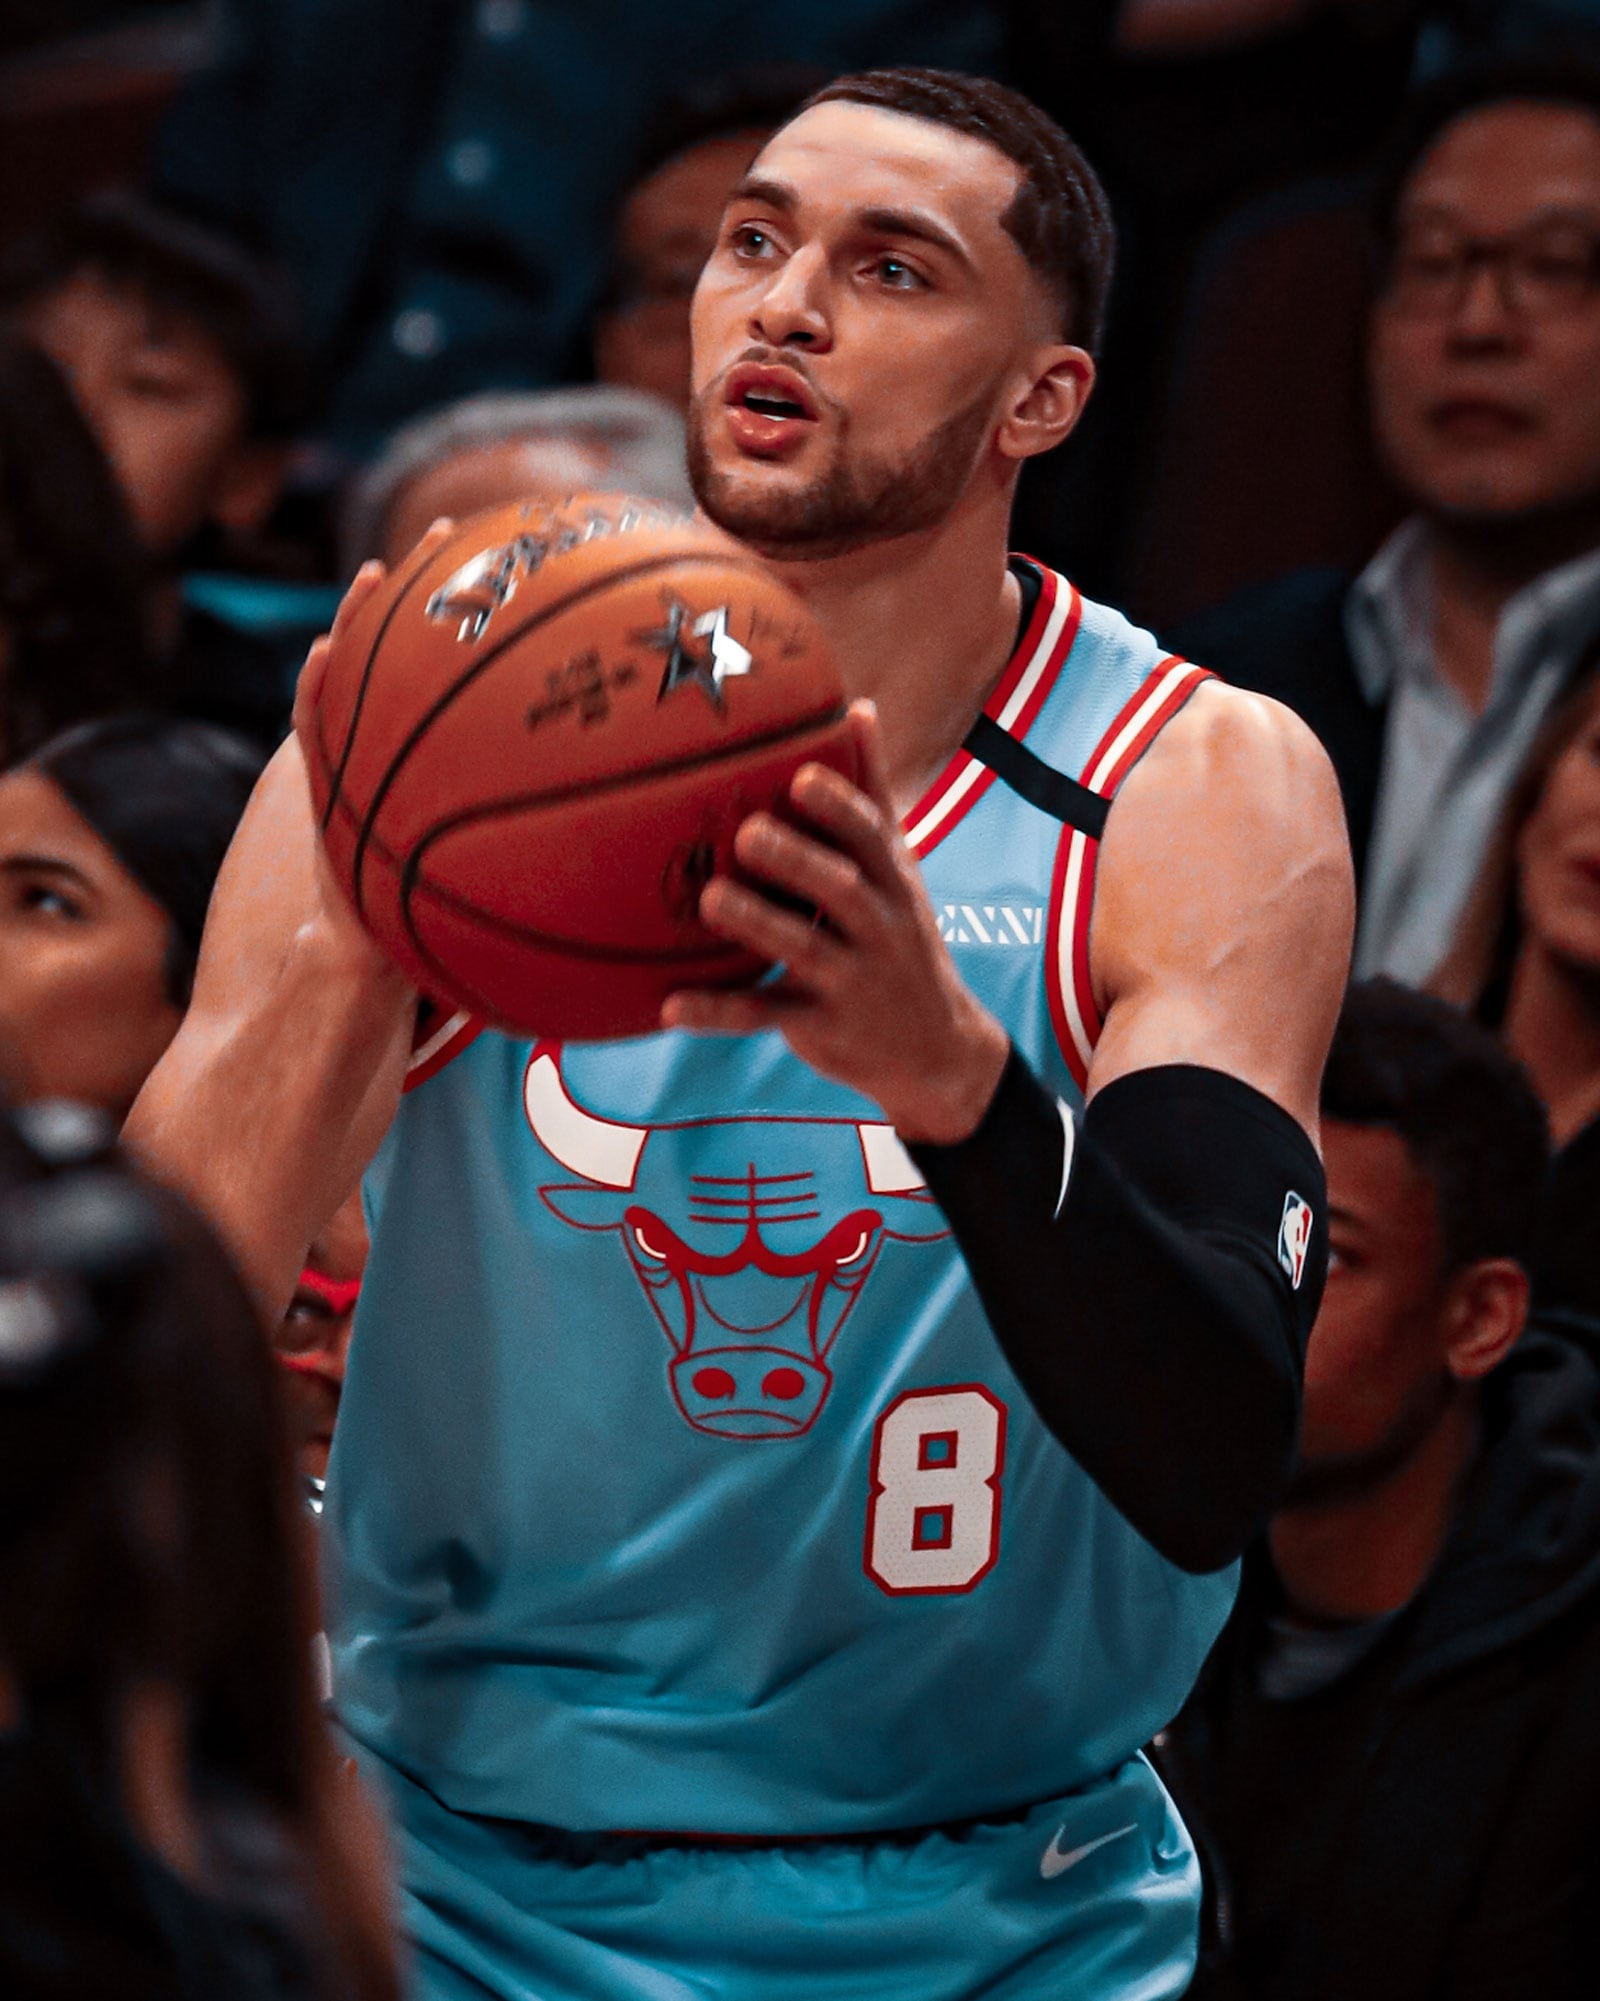 Zach had a hot start in the three-point competition but was unable to advance to the Finals round.